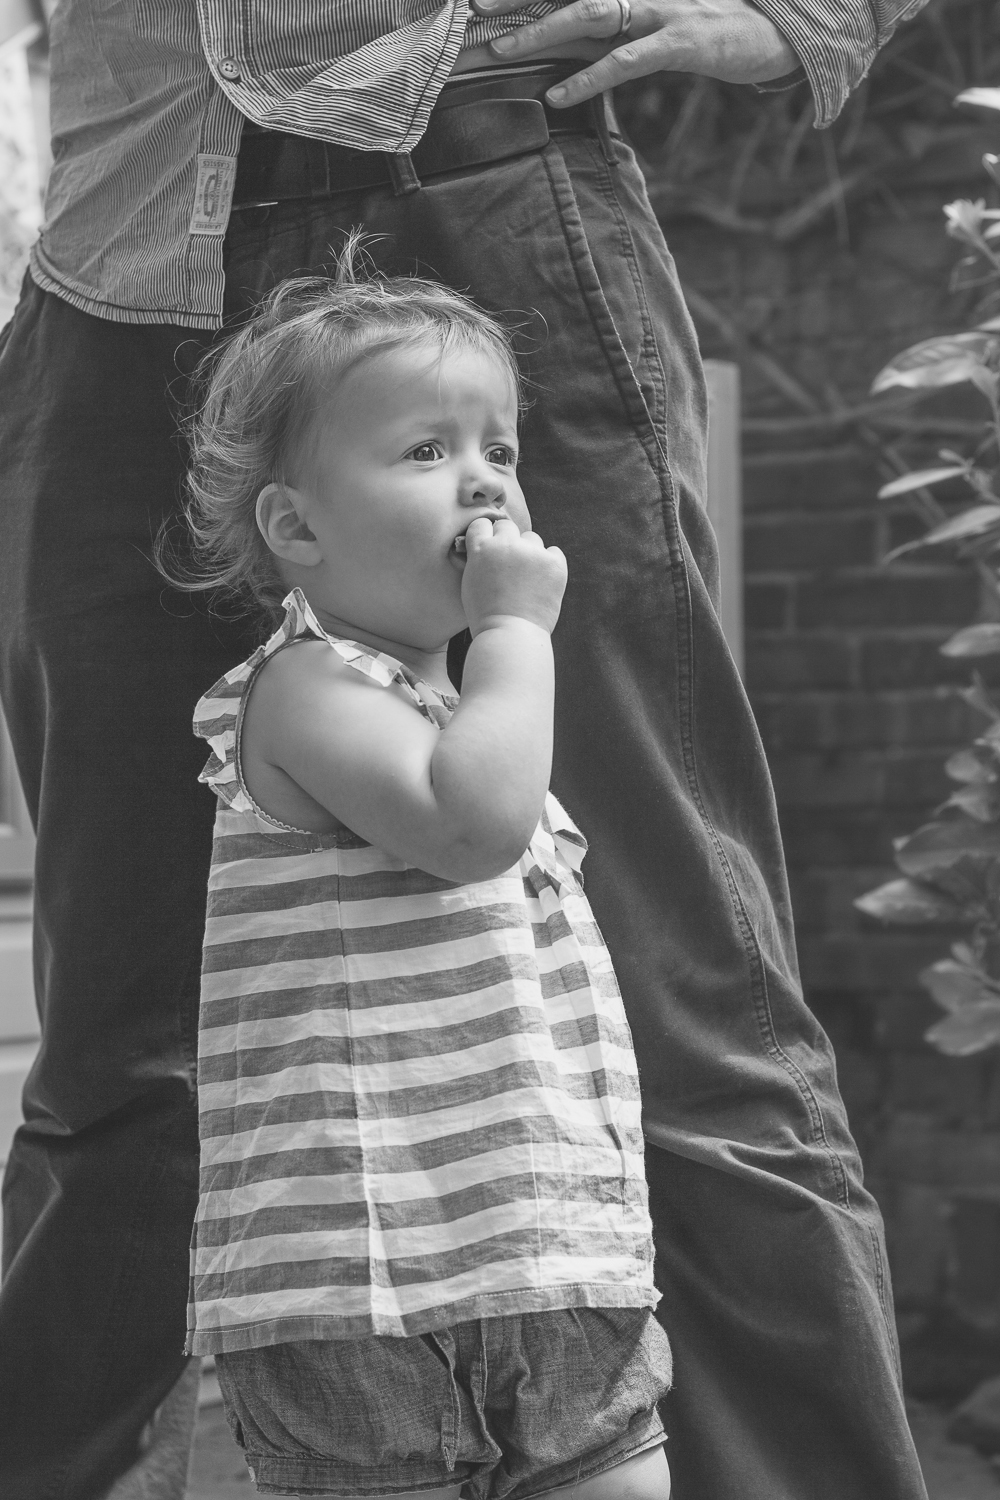 A little girl holds her hand to her mouth and hugs her dady's leg